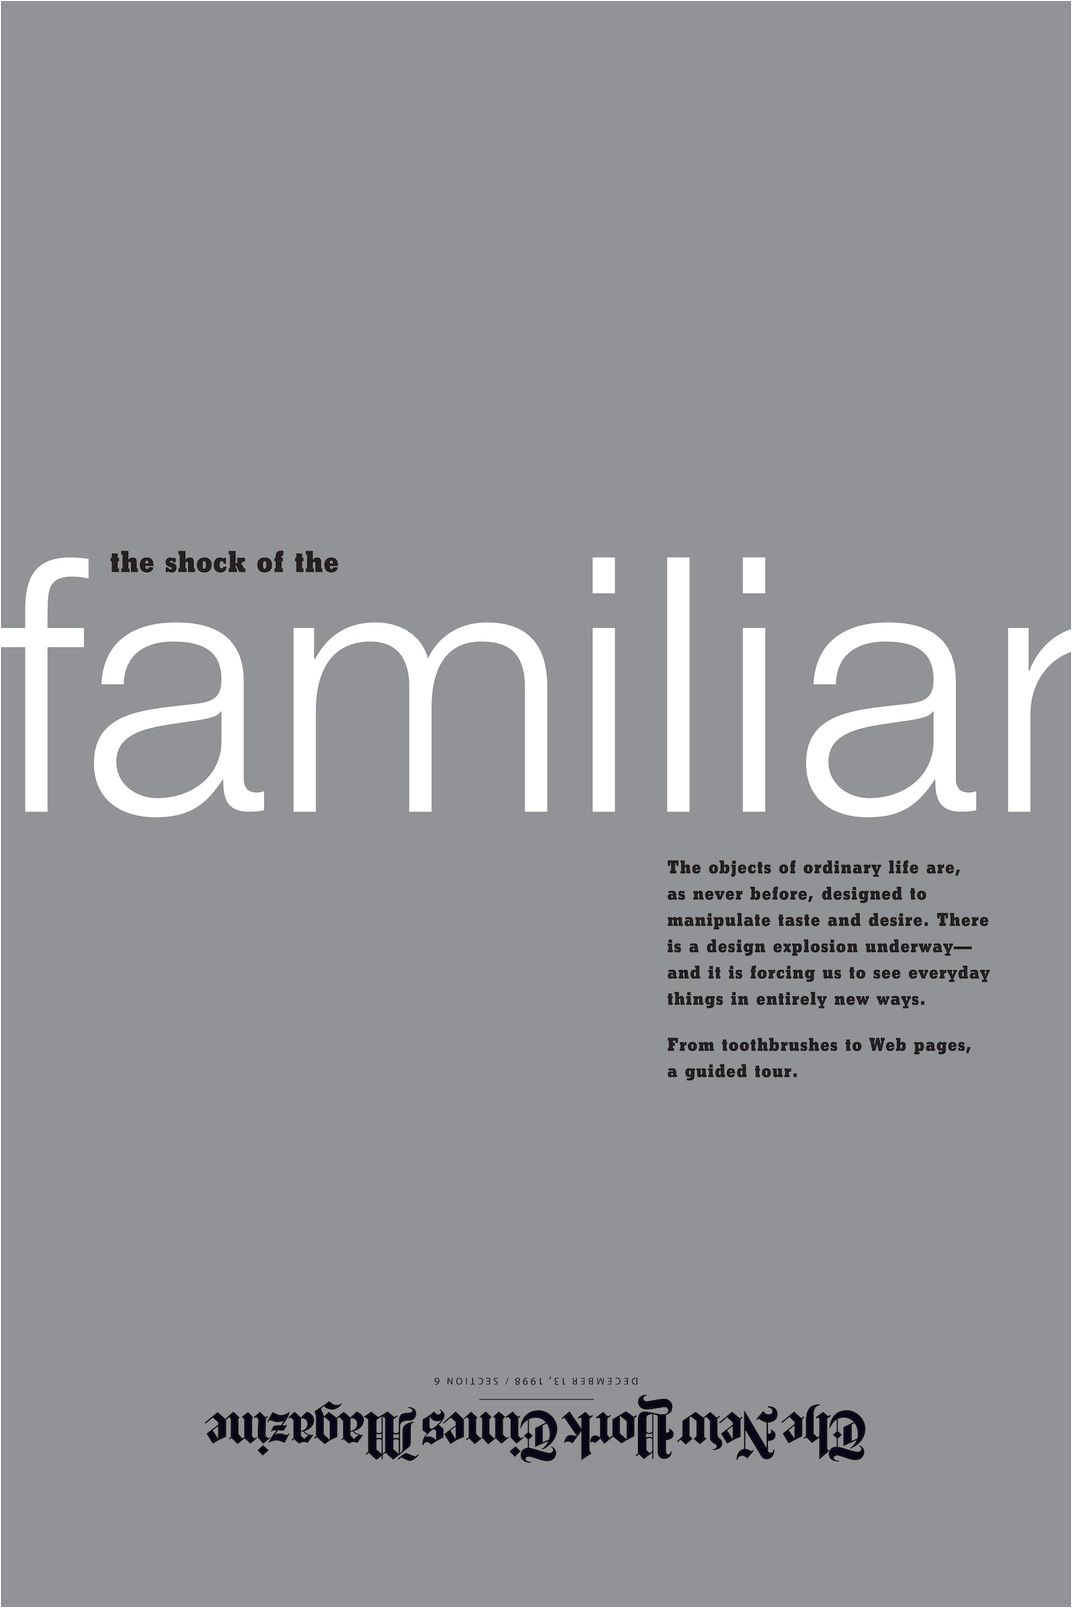 the shock of the familiar a cover design for the new york times magazine that examines how design is inherent in all objects yet is often invisible to the